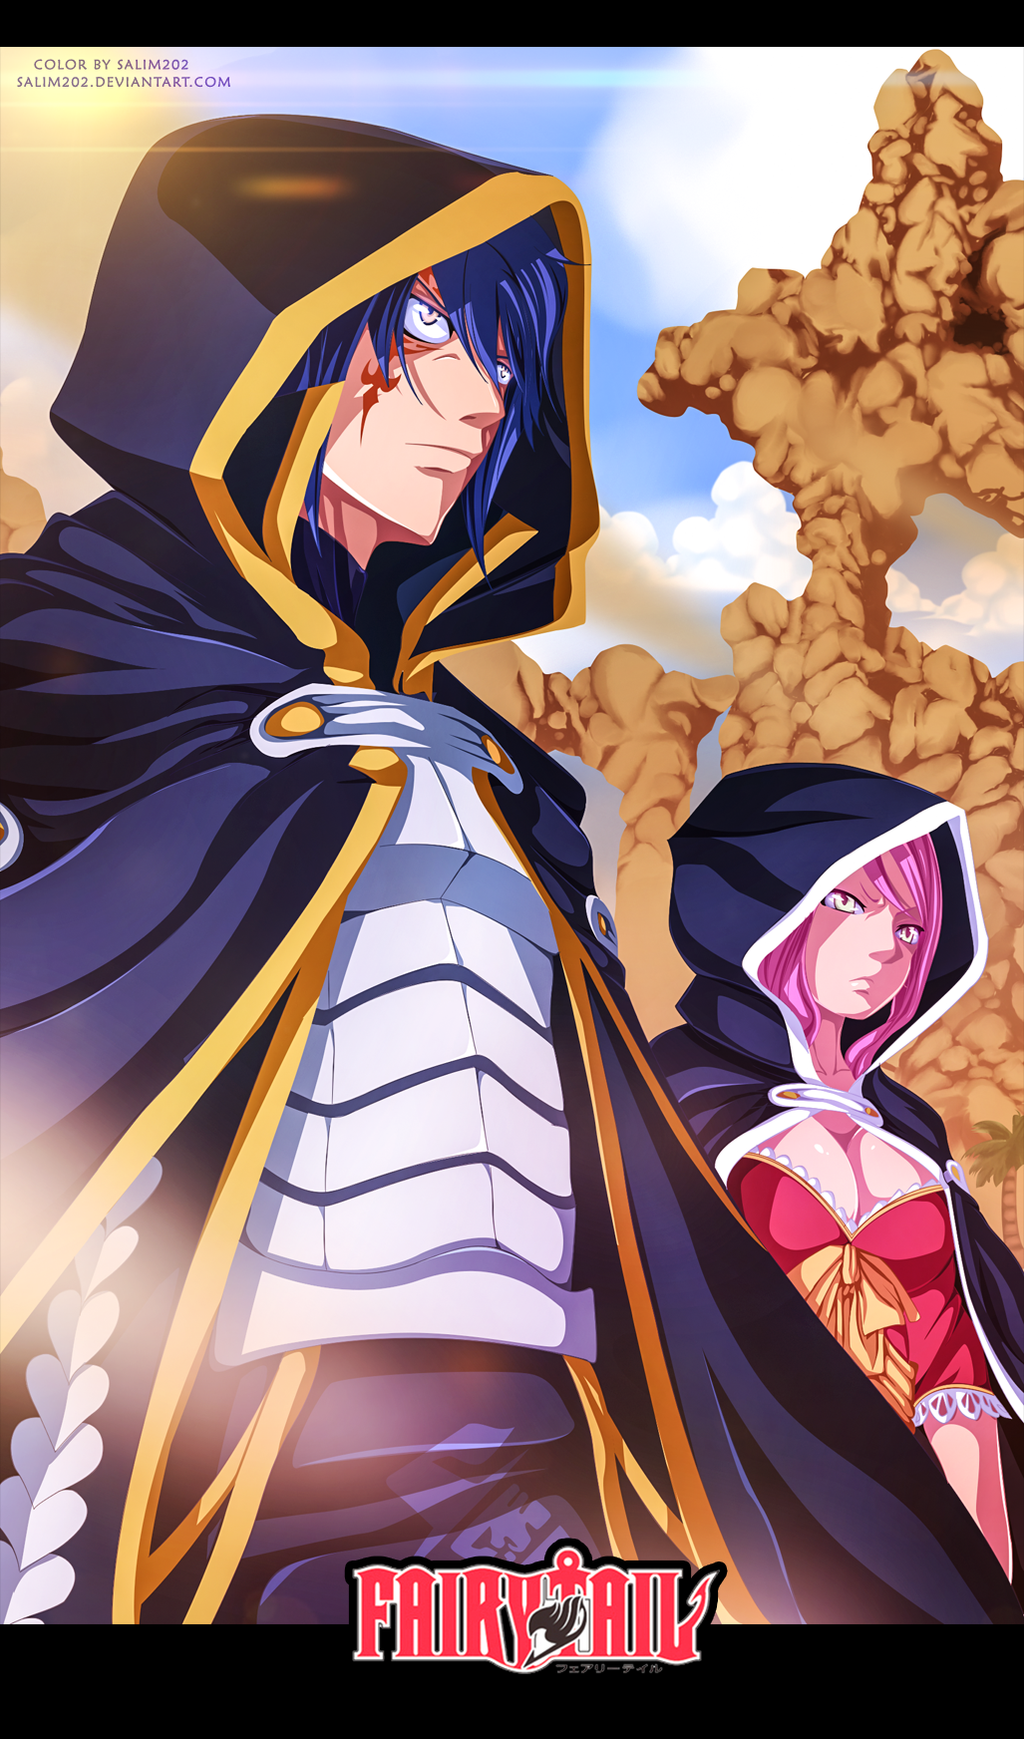 Jellal and meredy - Fairy Tail 364 by salim202 on DeviantArt